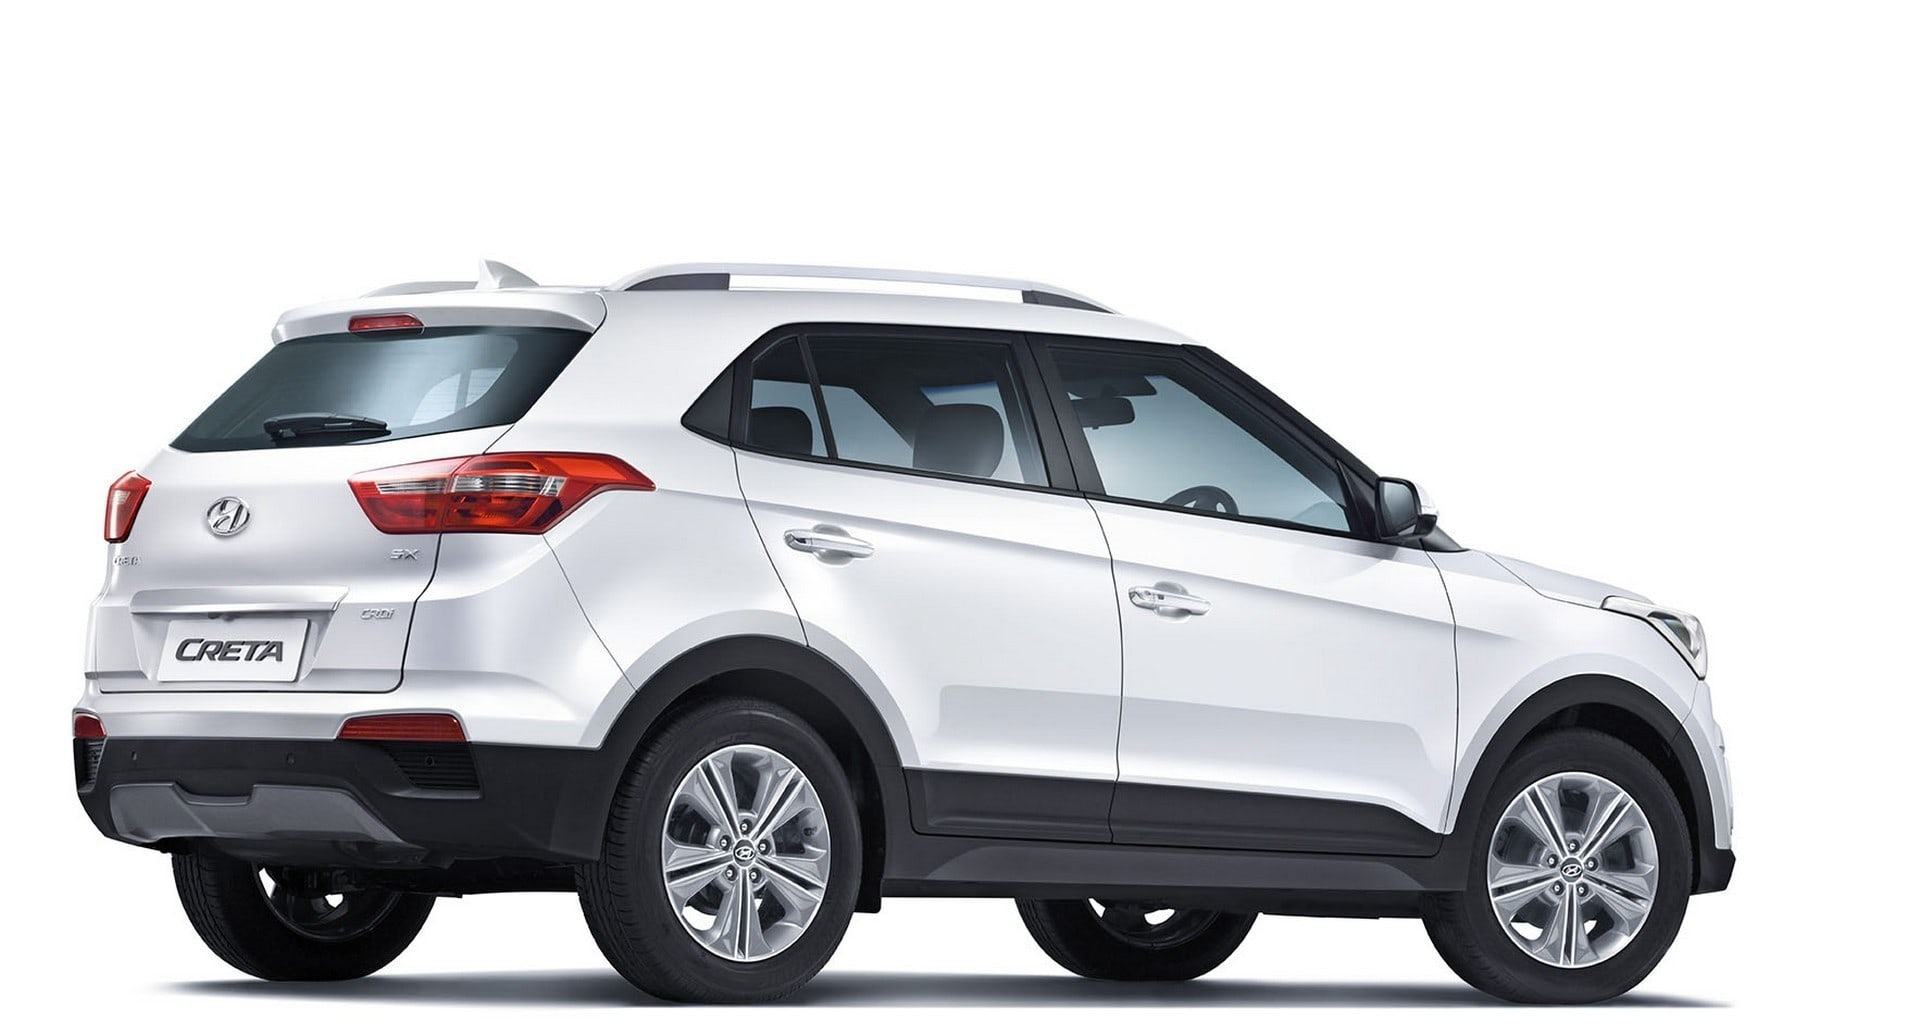 Hyundai Creta widescreen wallpapers